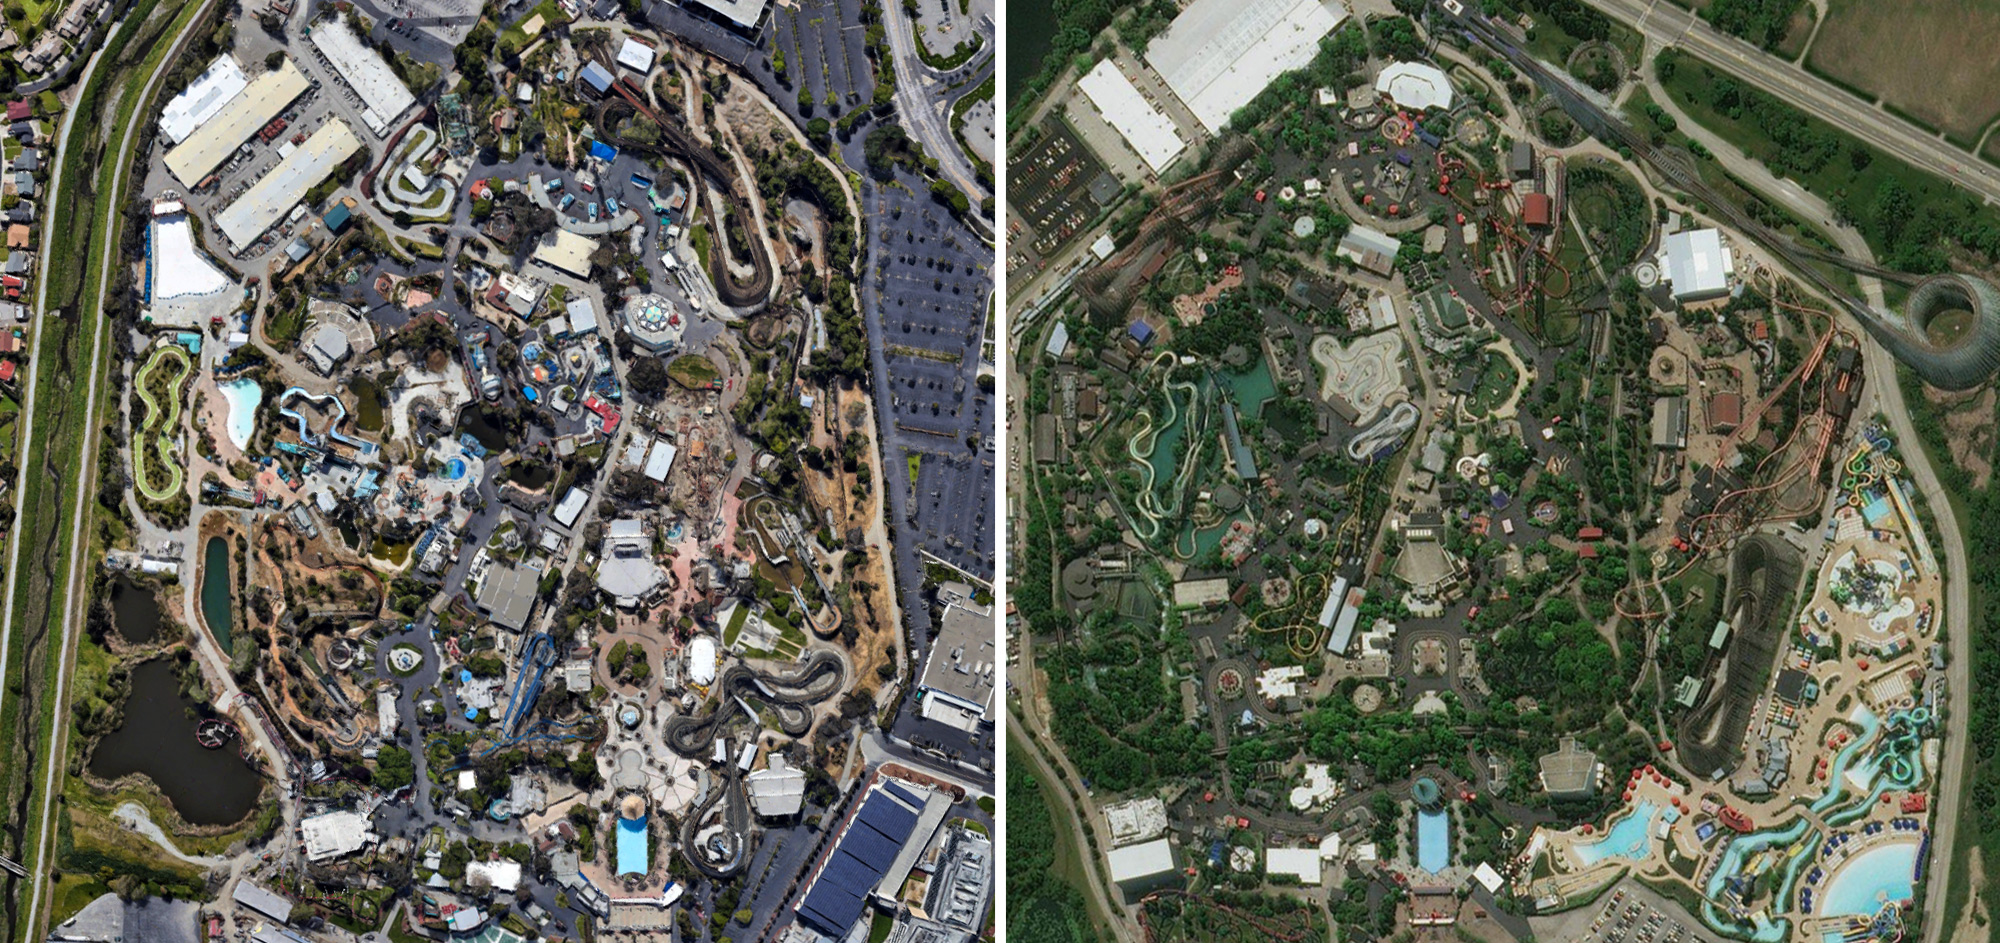 California's Great America (left) as compared with Six Flags Great America (right).